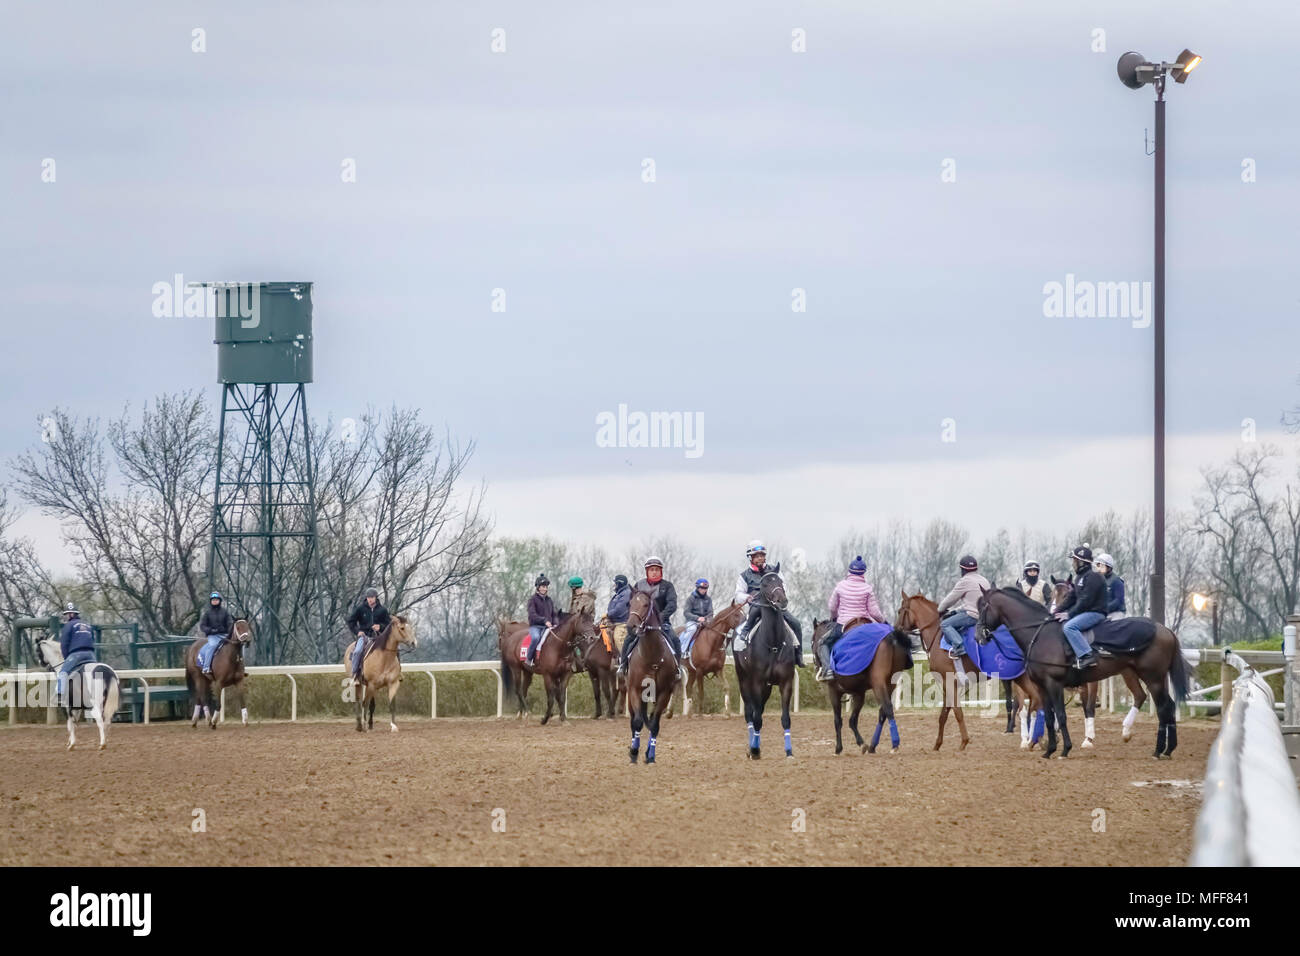 LEXINGTON, KENTUCKY/USA - APRIL 19, 2018: Riders exercise thoroughbreds singly or in pairs during a workout early on a chilly morning at Keeneland Rac - Stock Image